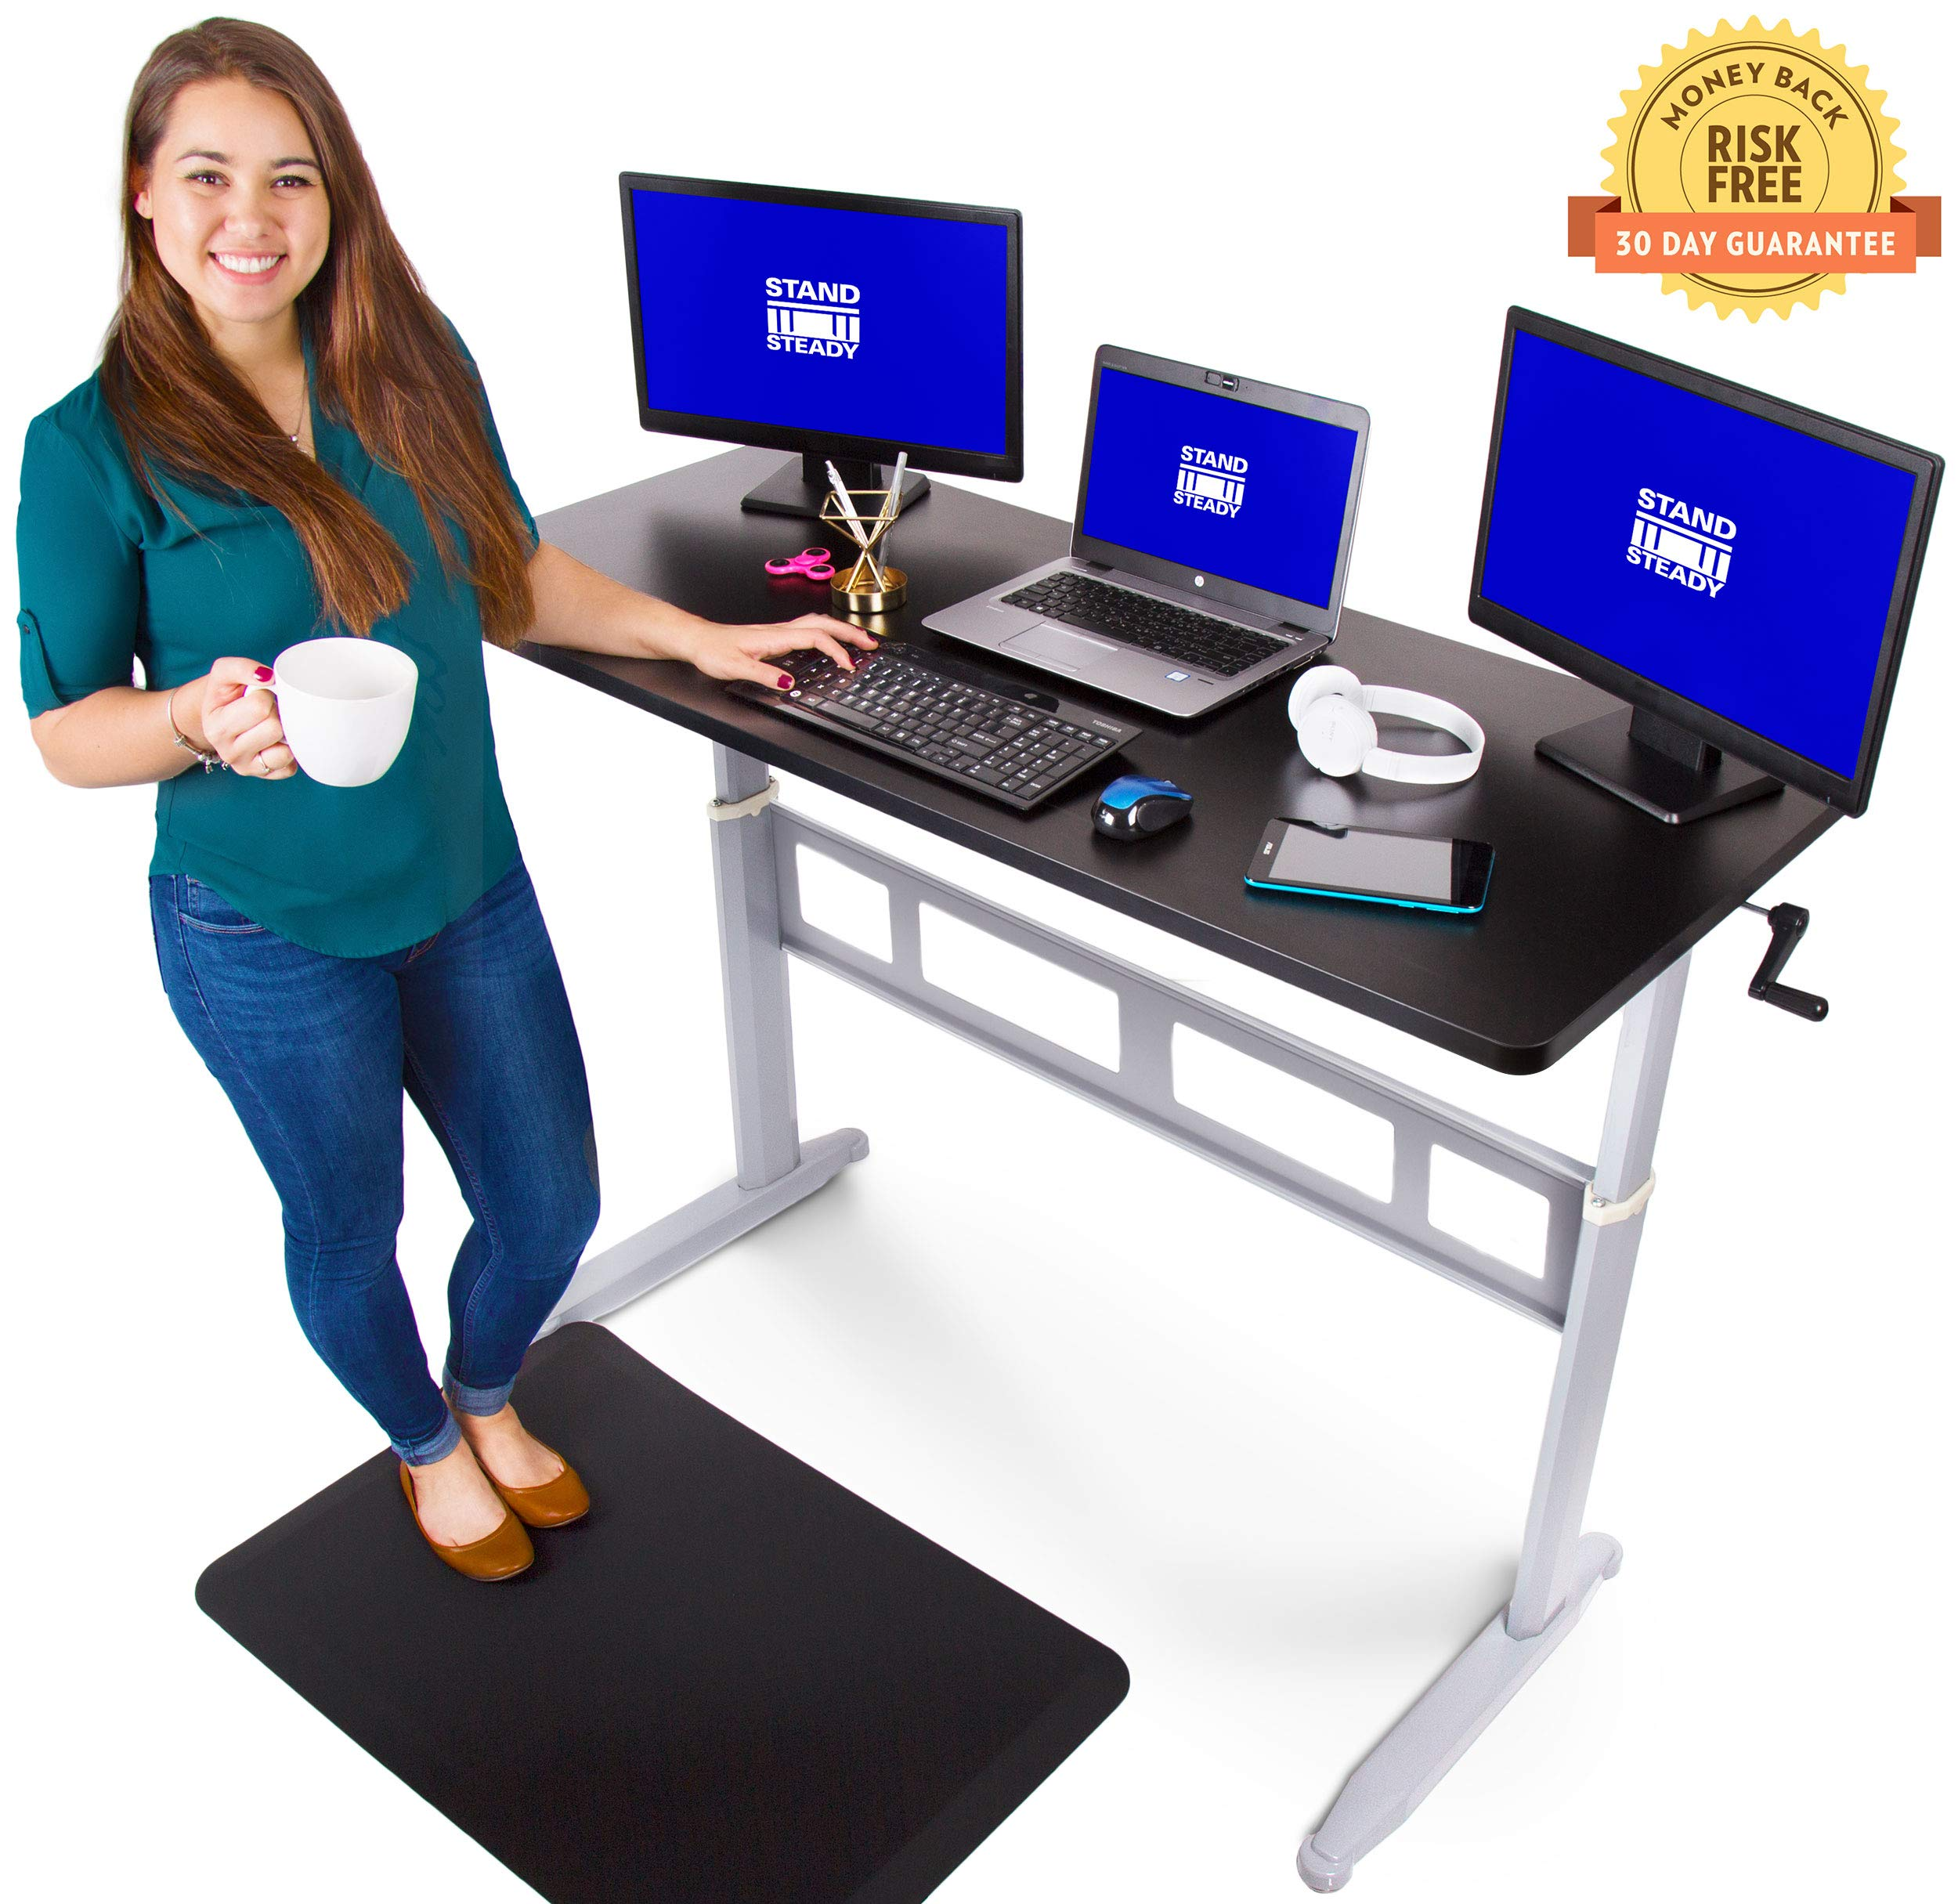 Tranzendesk Standing Desk - 55 inch Long - Easily Crank from Sitting to Standing (Black Top/Silver Frame) by Stand Steady